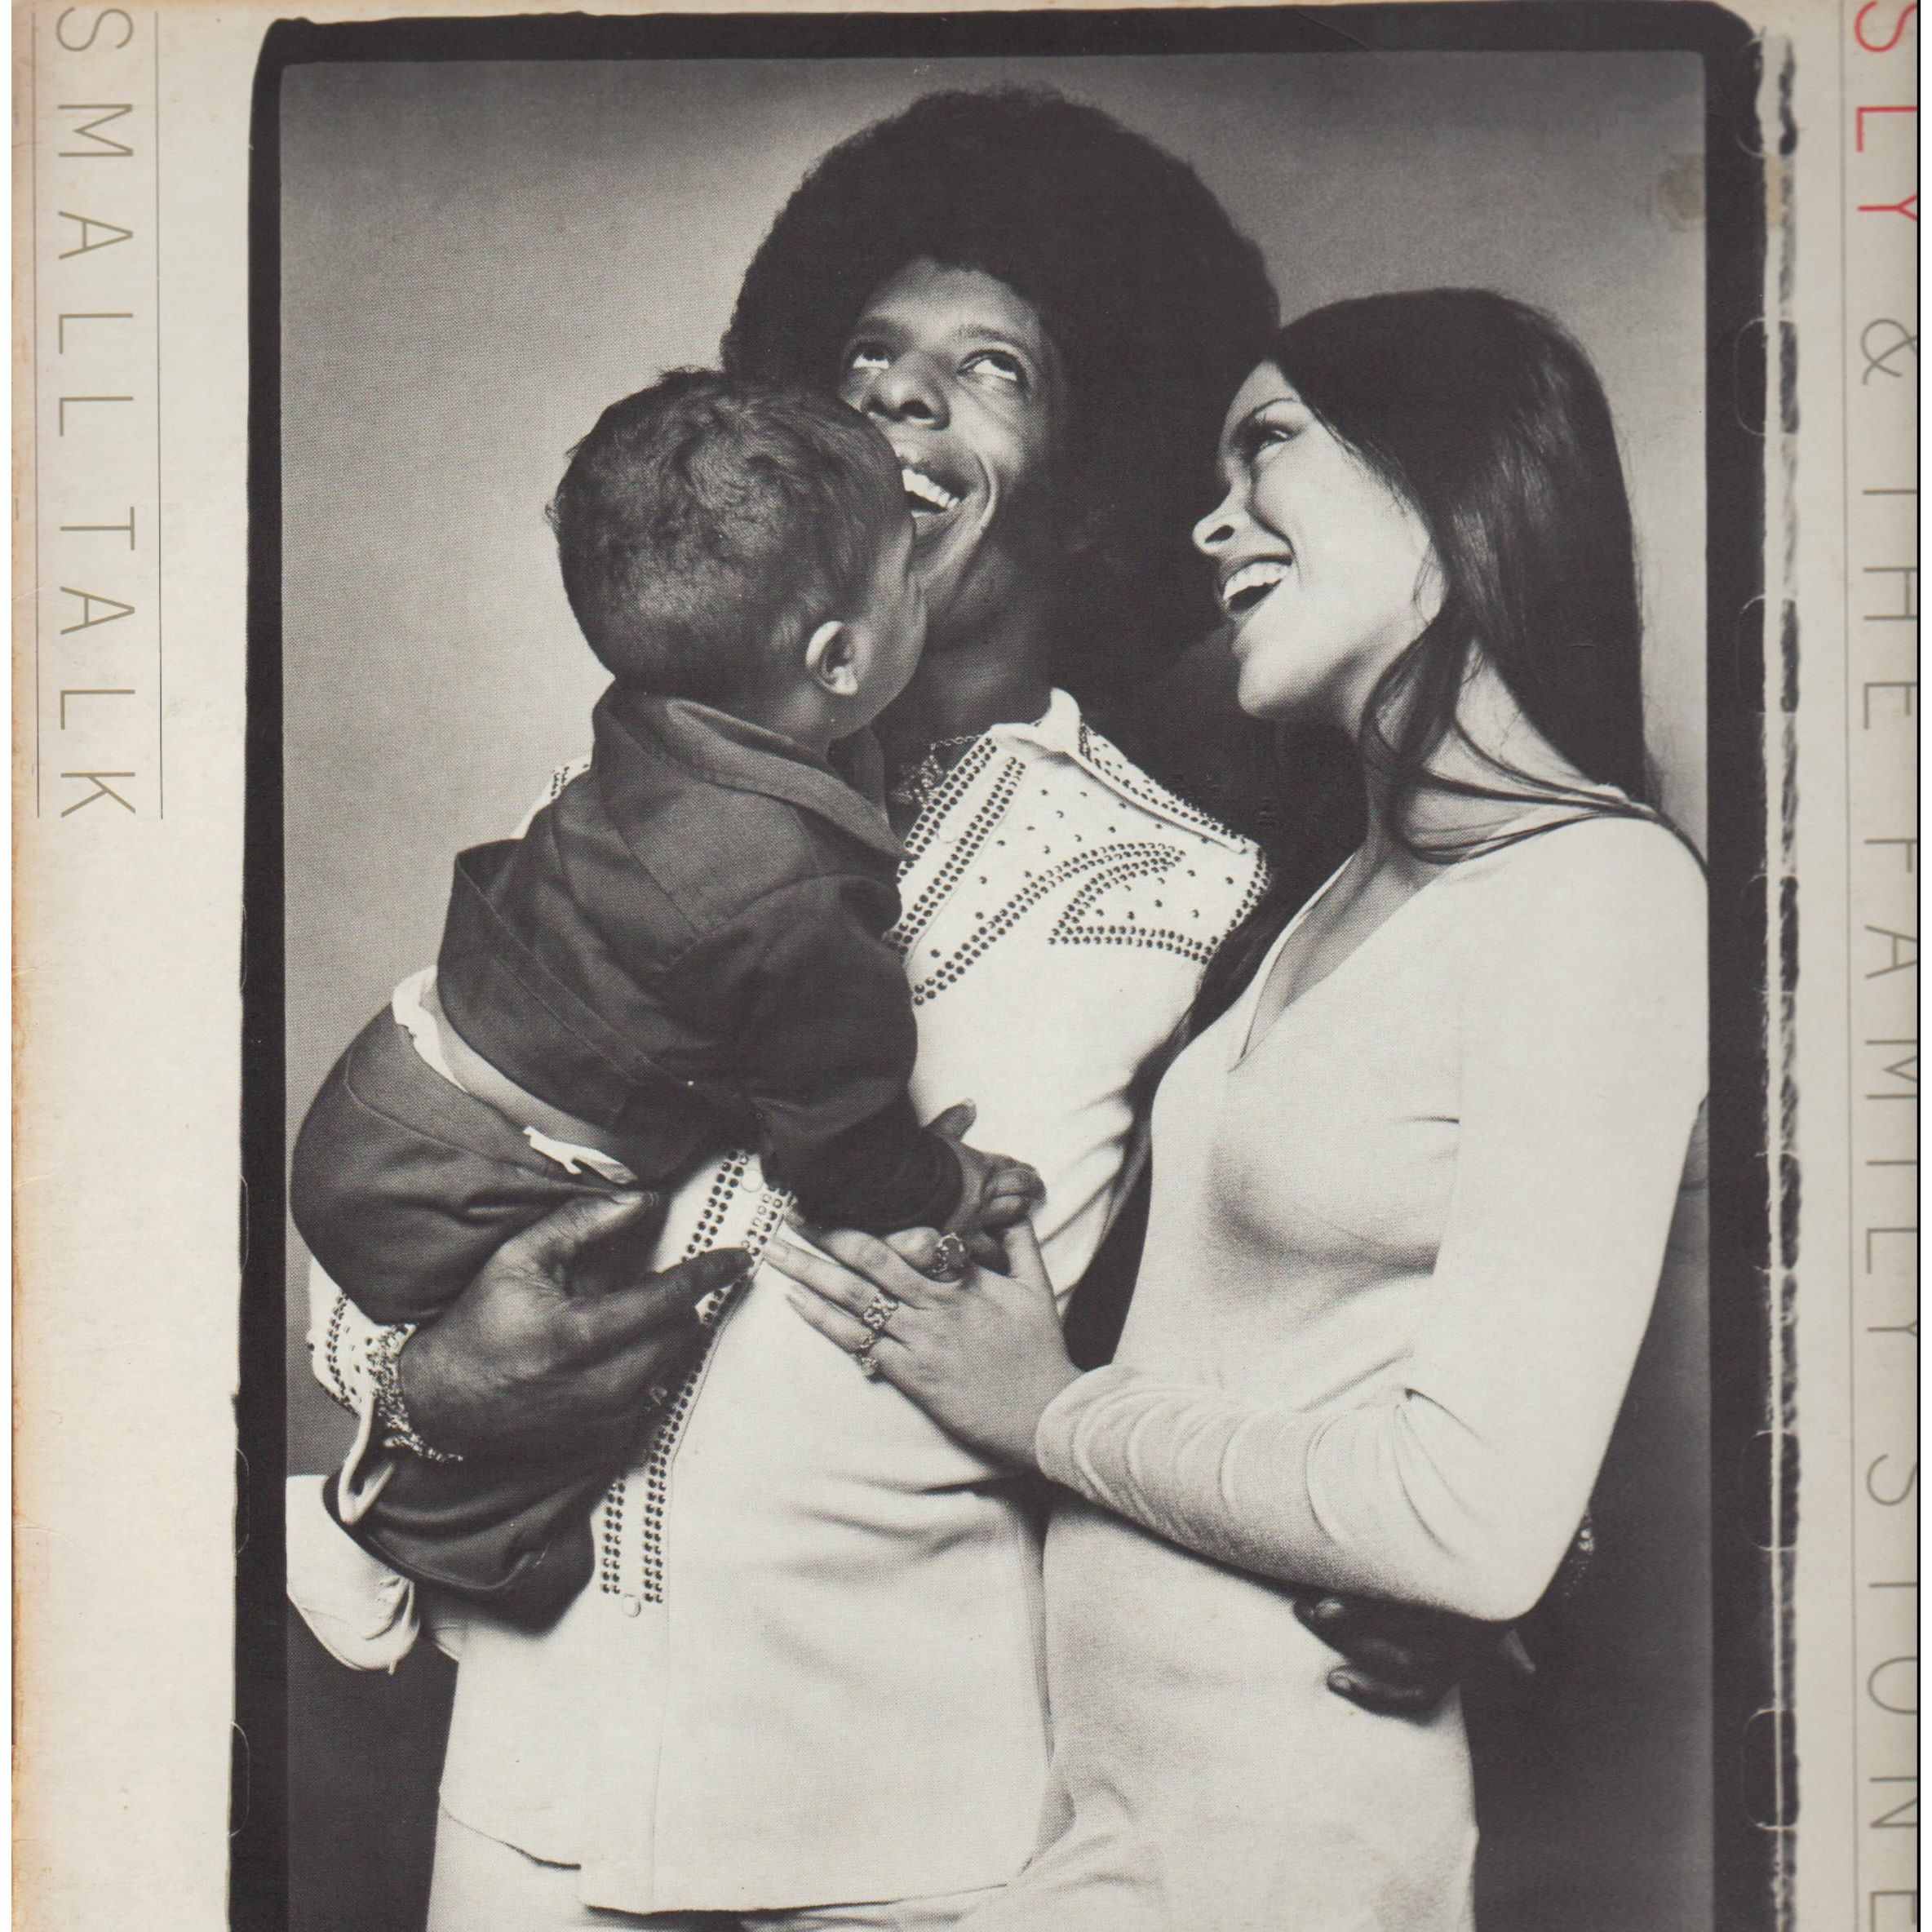 Sly Stone and Kathleen Silva Album: Sly and The Family Stone 'Small Talk'